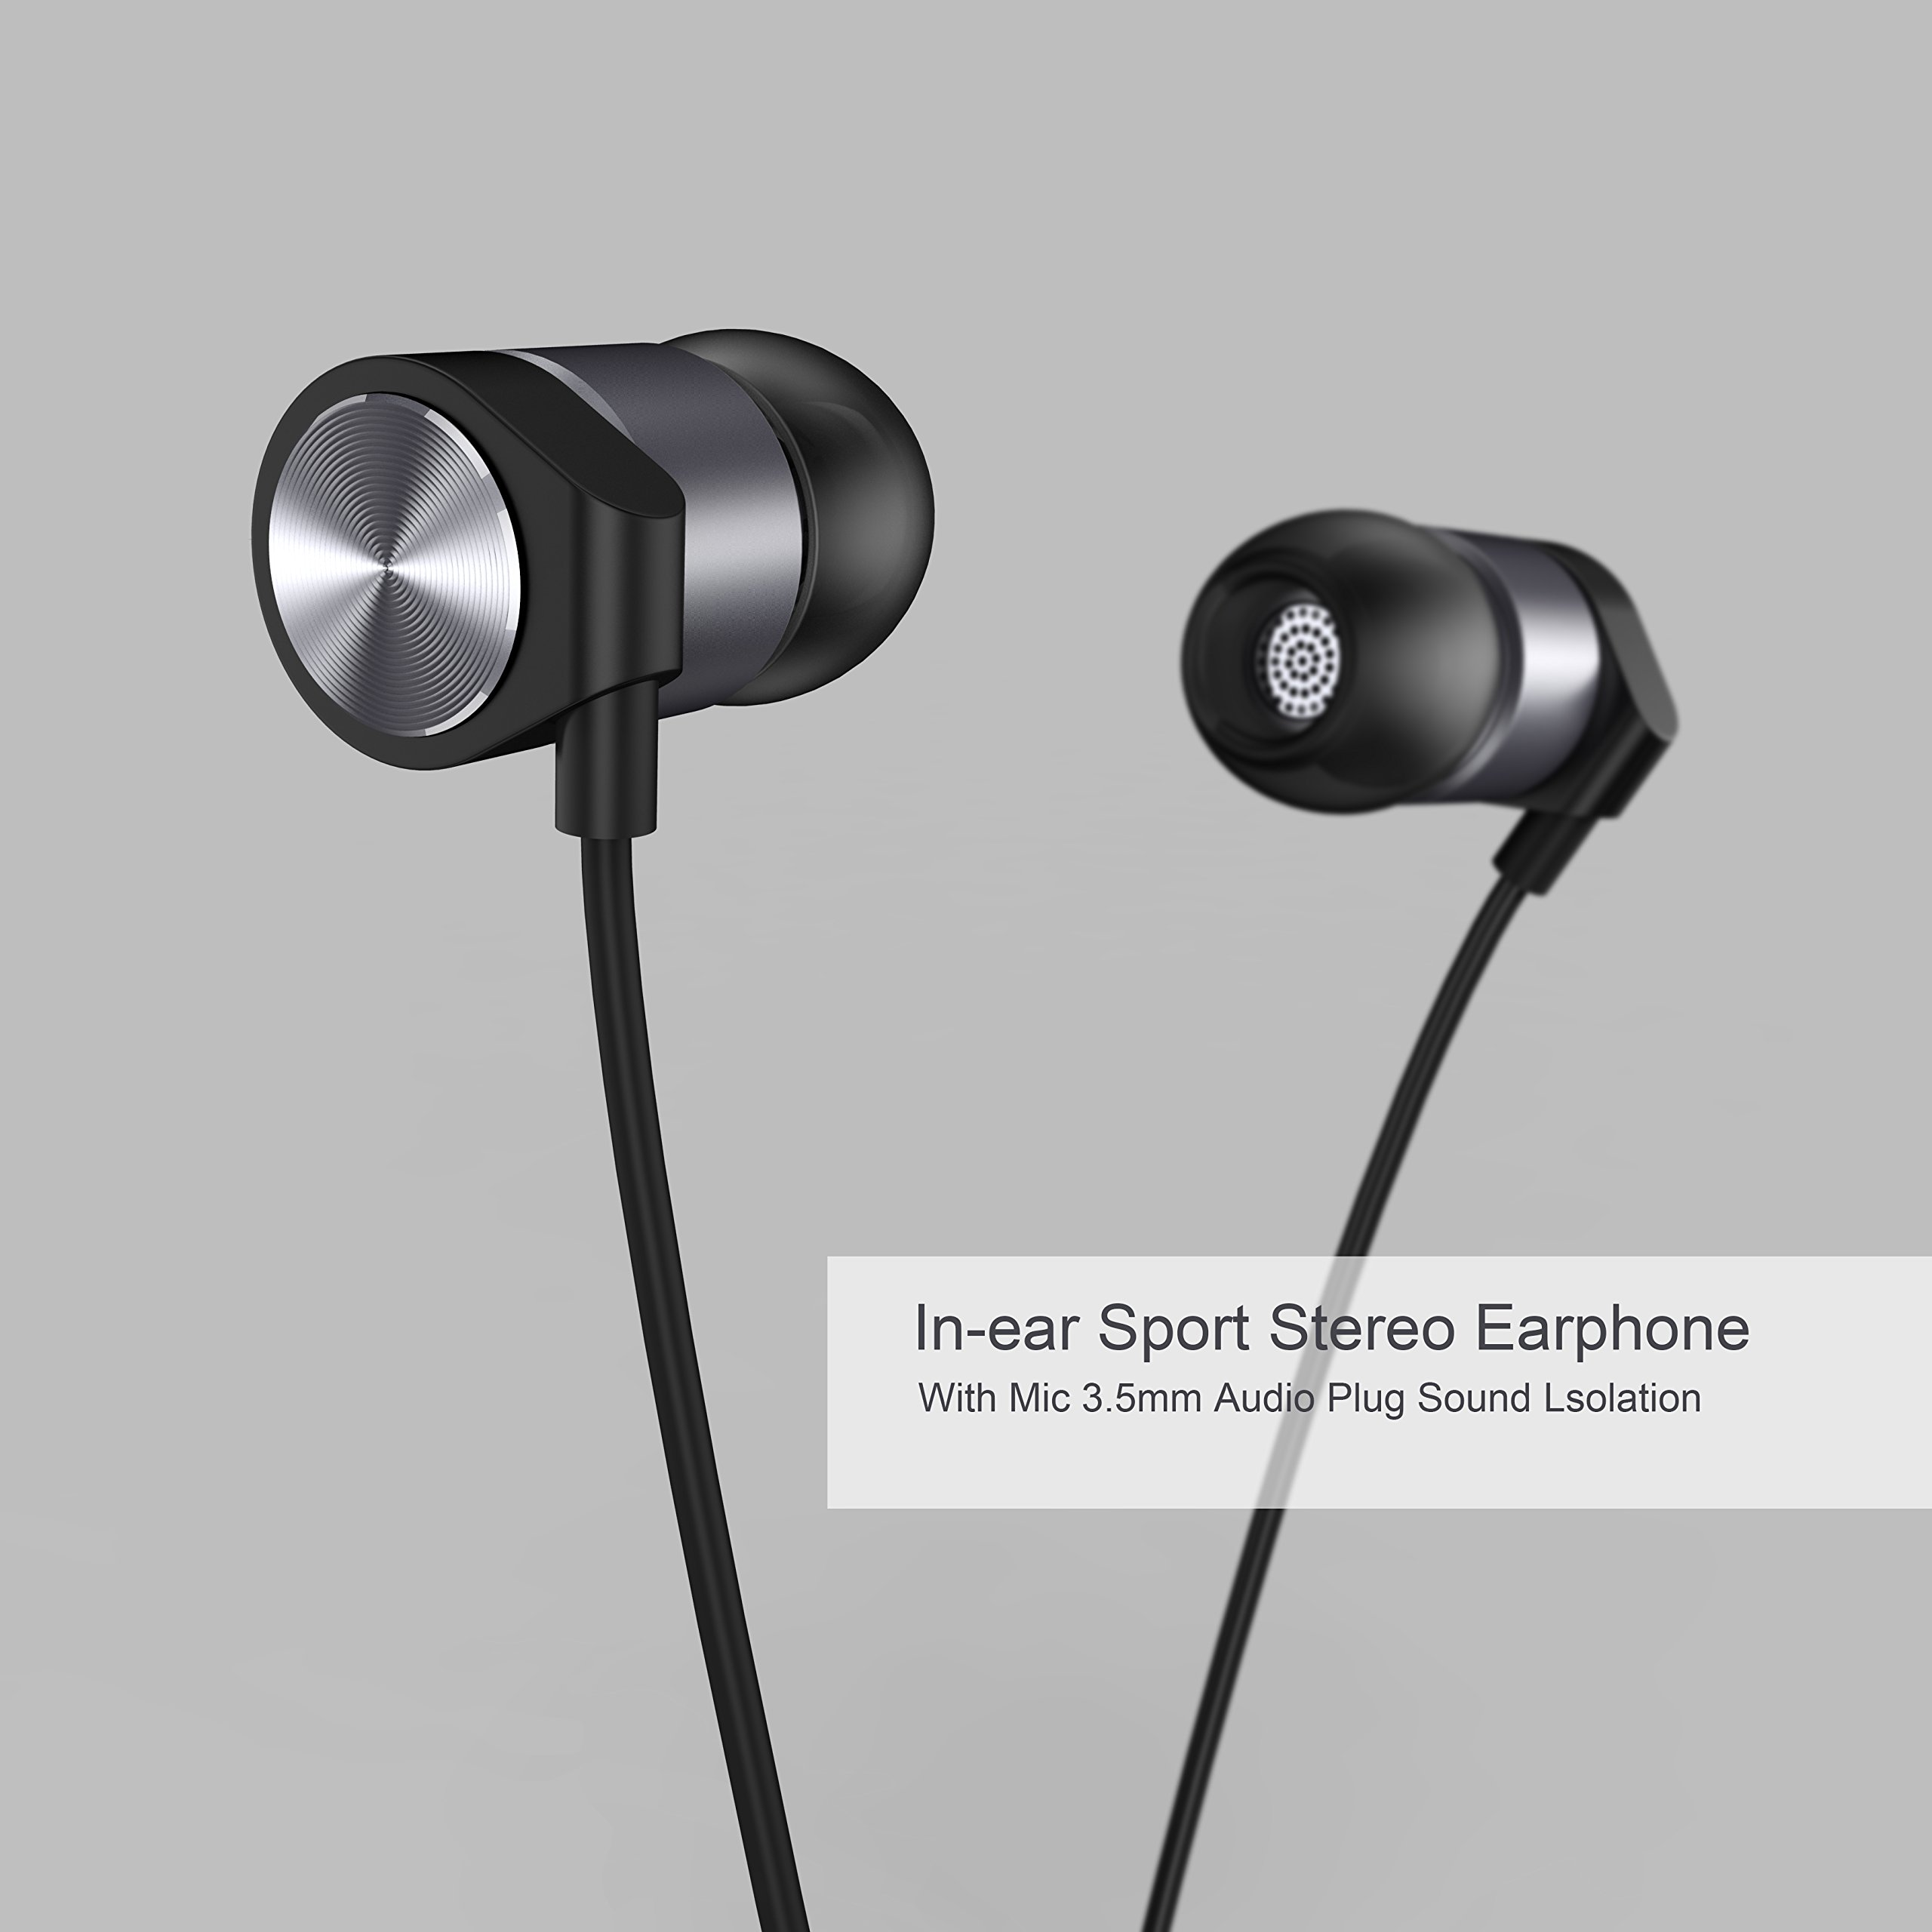 In Ear Headphones Maxtronic Metasonics Earbud with Line-in Microphone Heavy Bass Dynamic Driver Earphones with Non Tangle Fabric Braid For Running Gym iOS Android Phones Music Player iPhone by FEECHAGIER (Image #2)